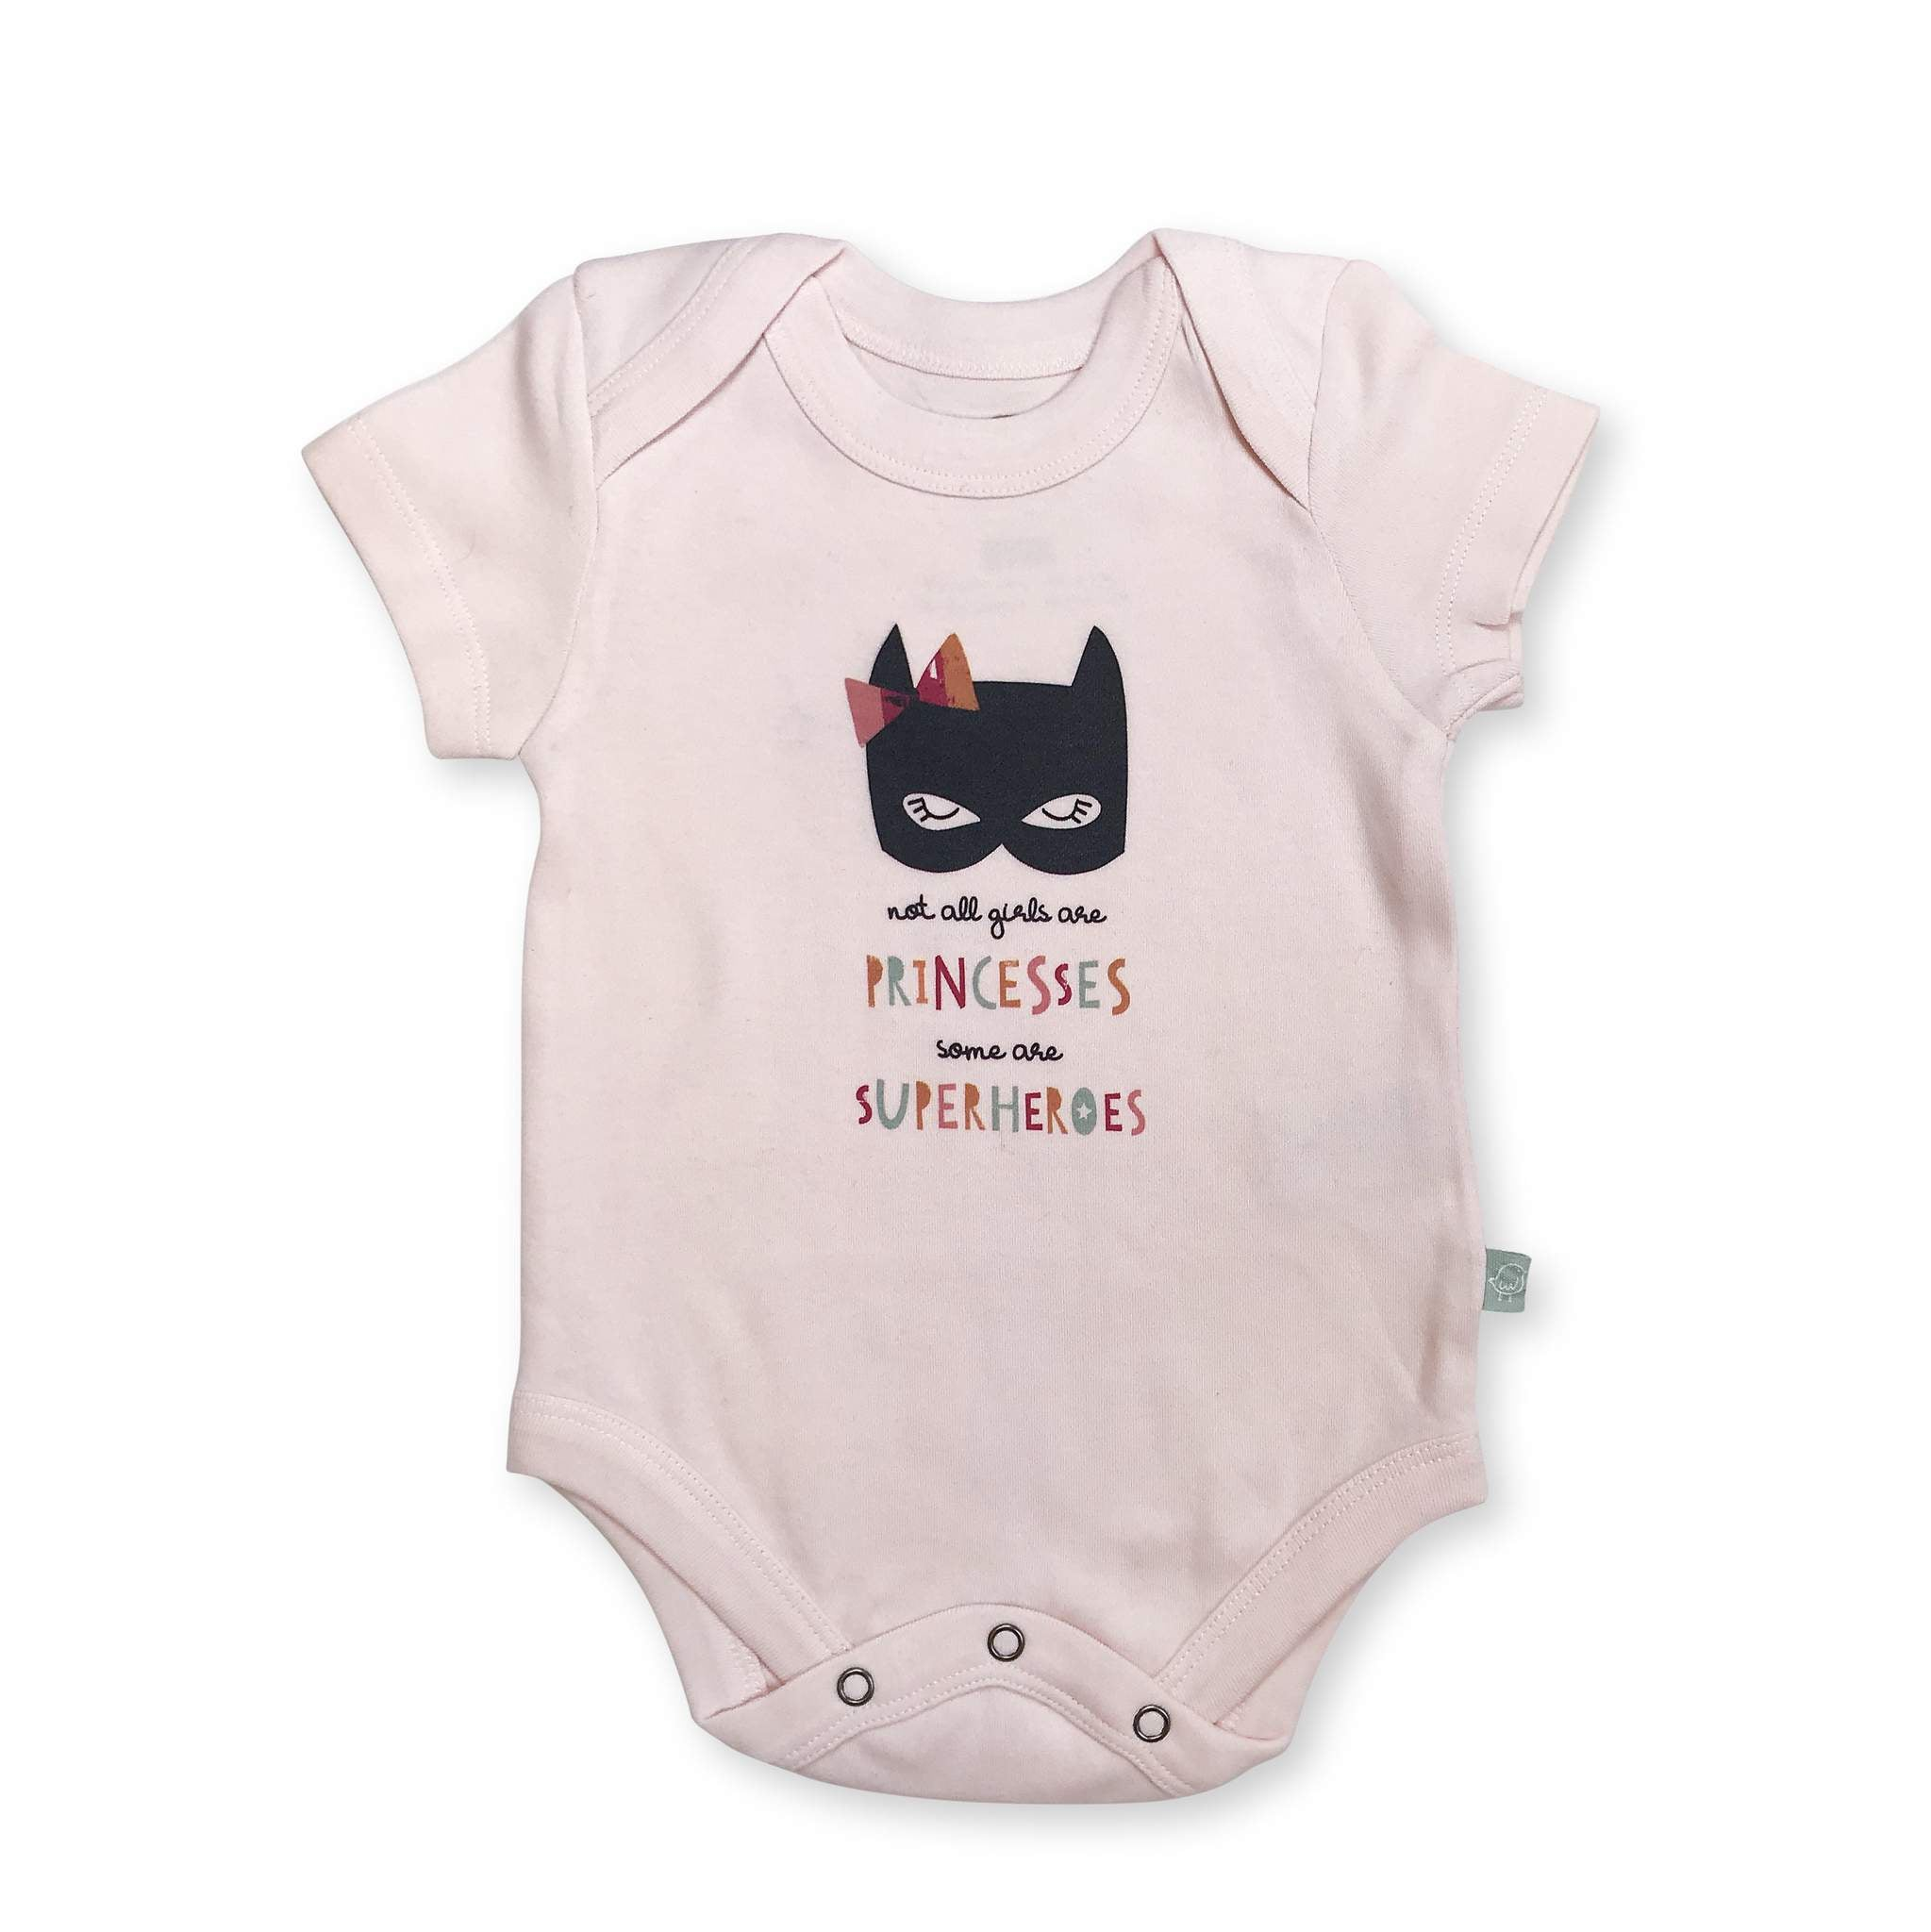 Finn + Emma graphic bodysuit pink superhero princess